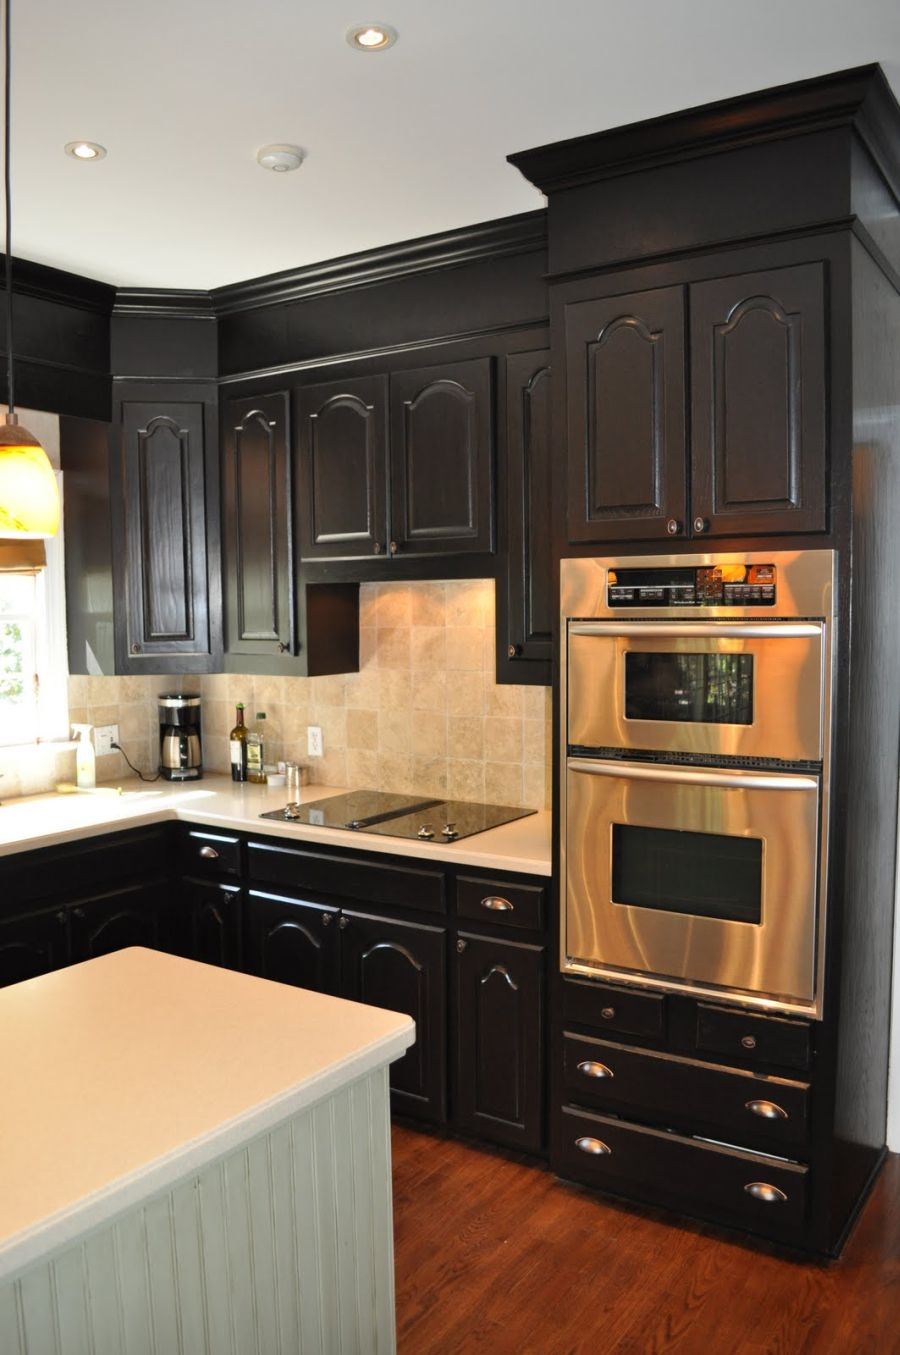 One color fits most black kitchen cabinets for Small kitchen shelves